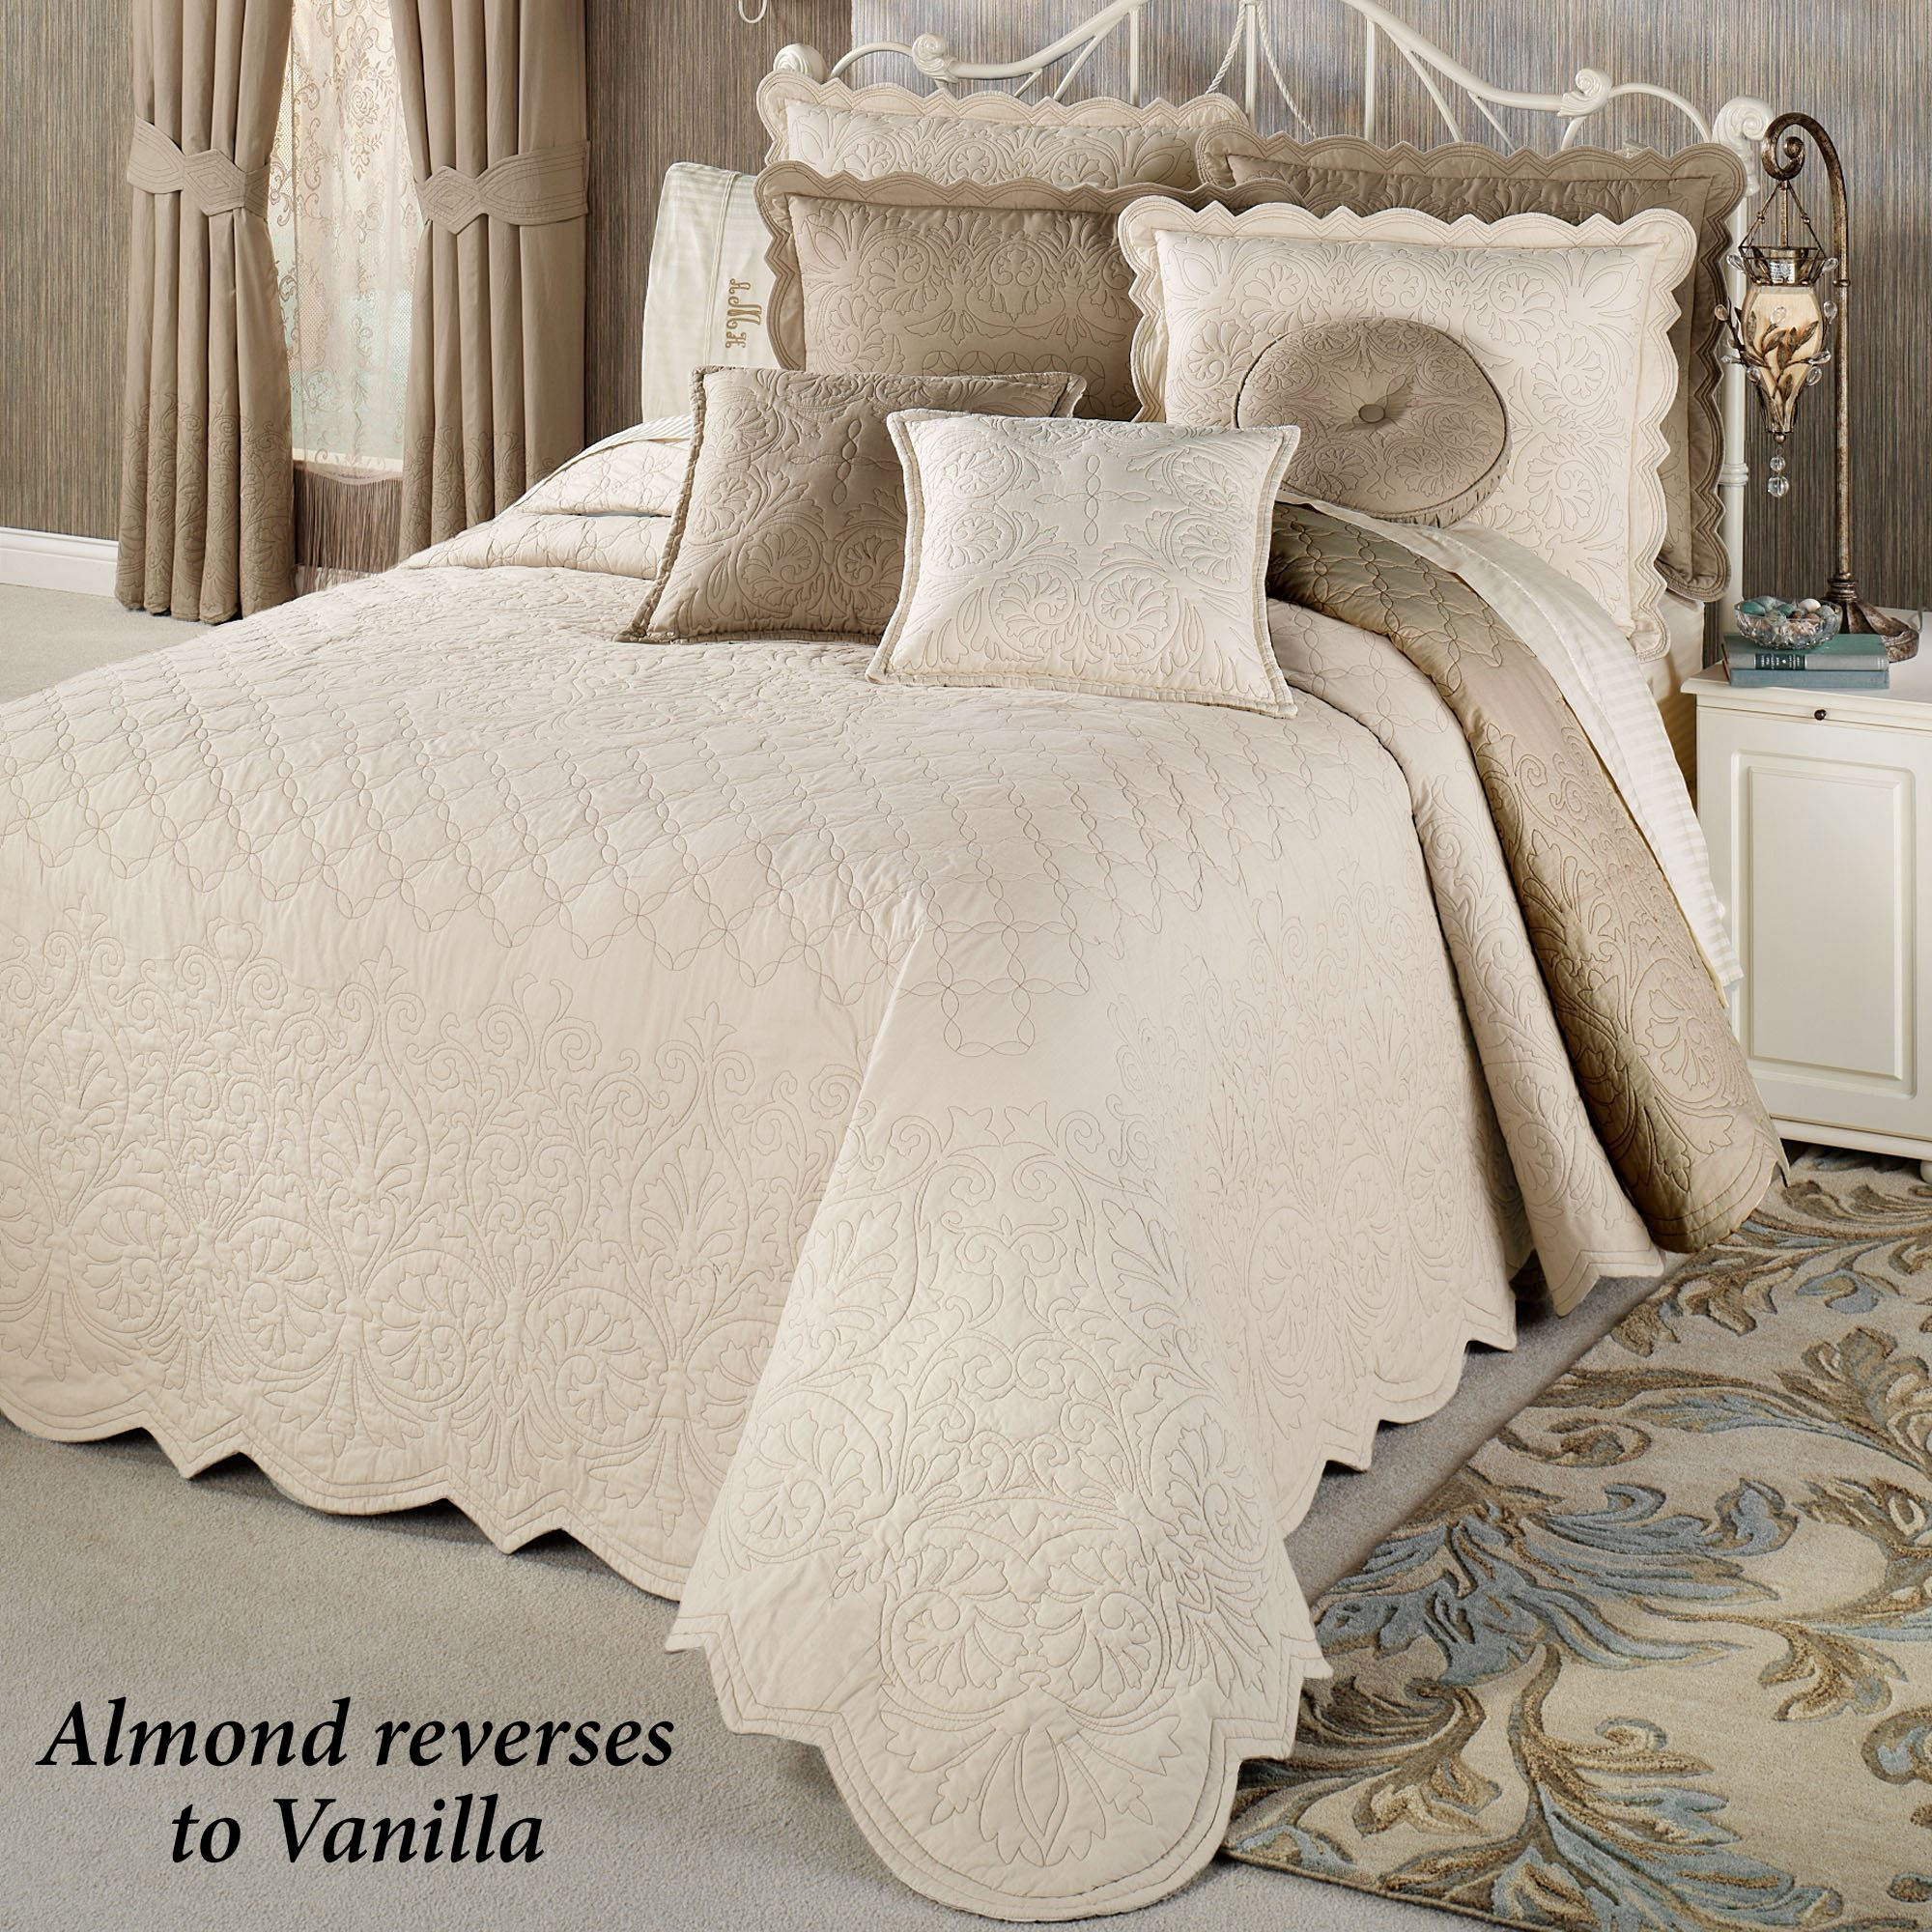 Evermore Almond Grande Bedspread Bedding